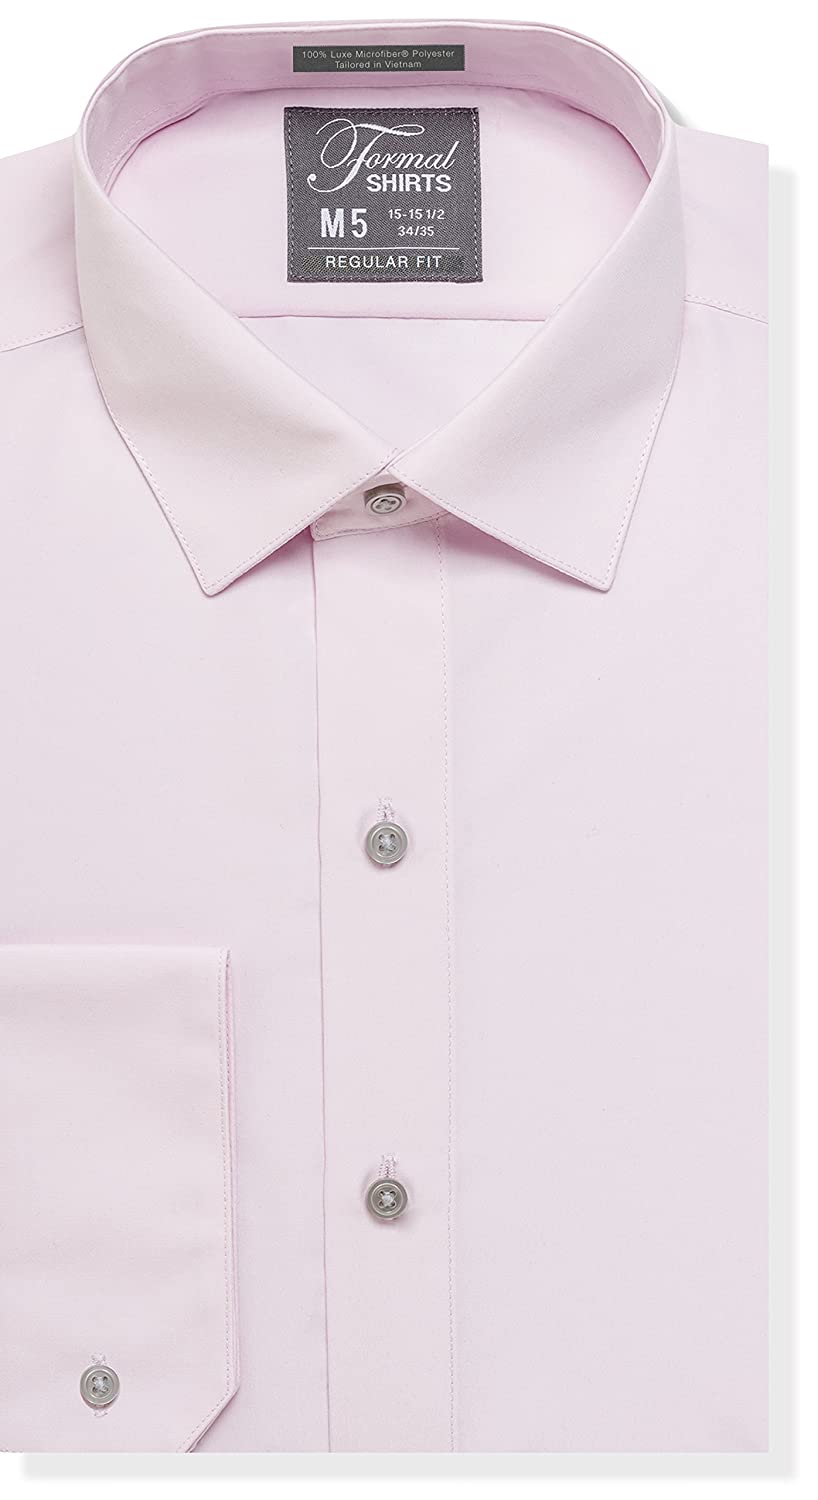 95e3826728c151 Formal Shirts Plaid - 100% Luxe Microfiber Dress Shirt or Formal Shirt is a  regular fit mens shirt designed with comfort in mind